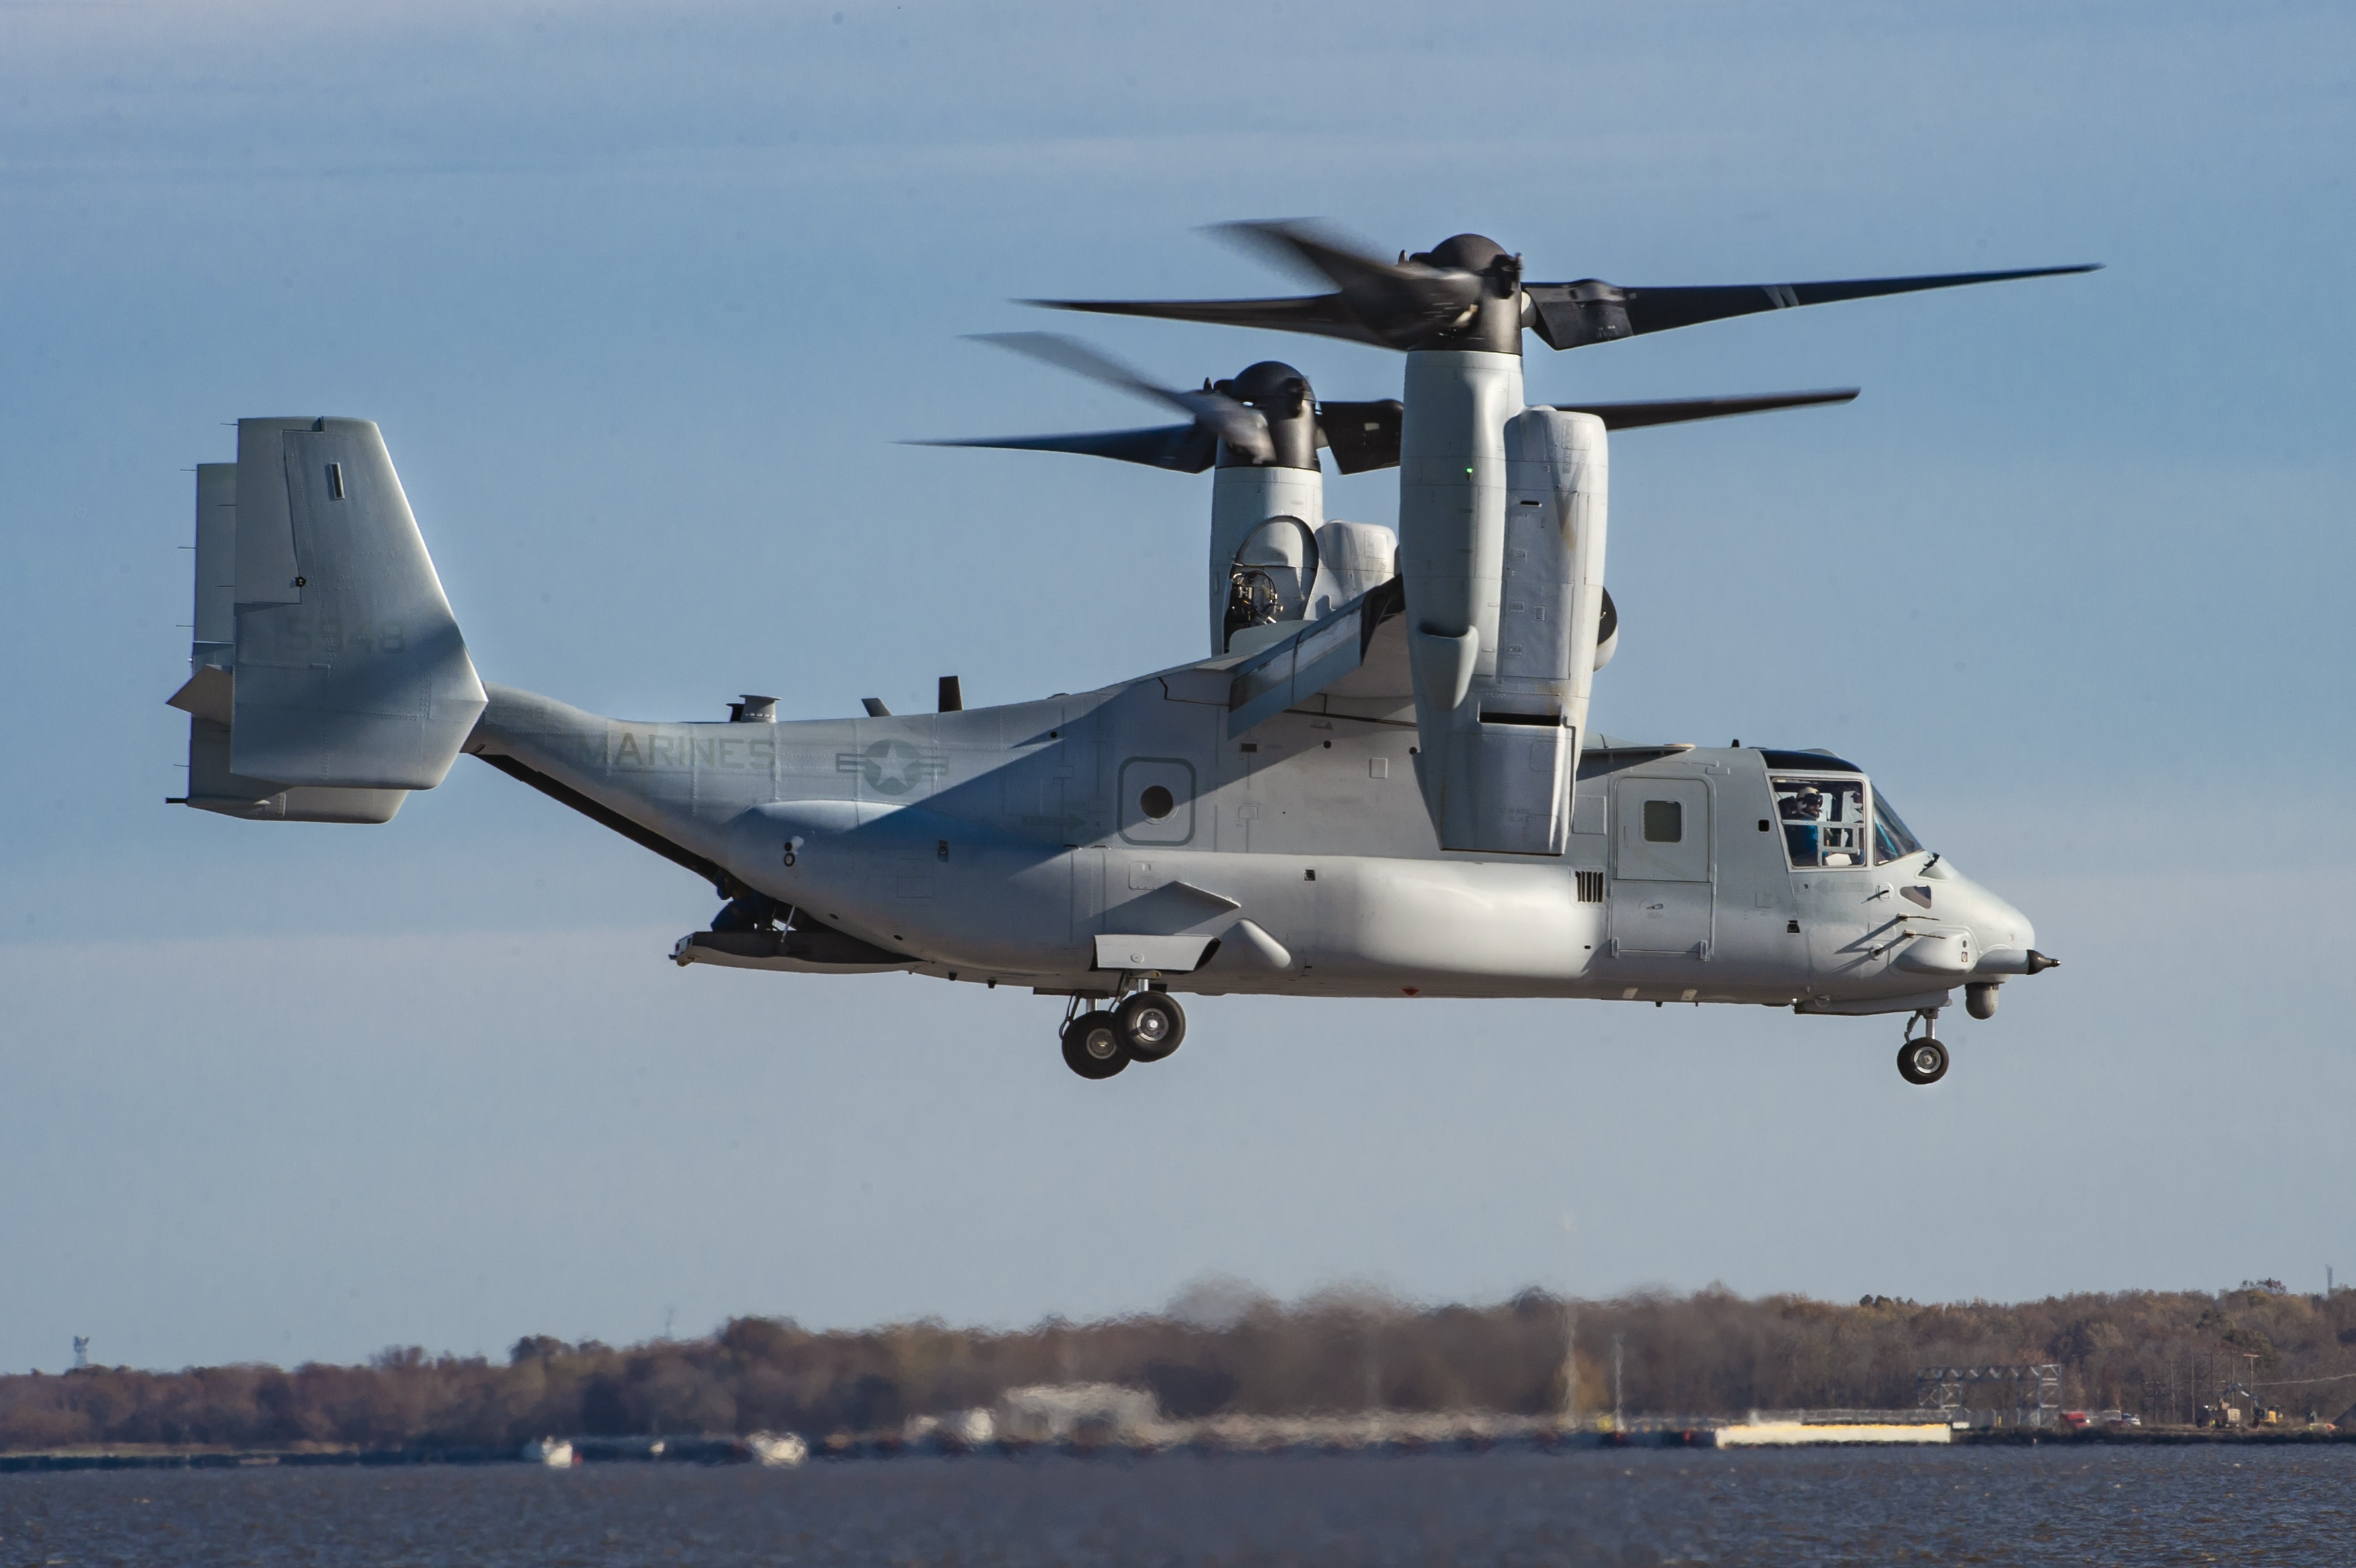 Boeing test pilots conduct the maiden flight of the first V-22 Osprey under the Common Configuration – Readiness and Modernization (CC-RAM) program which is to be delivered to the U.S. Marine Corps.